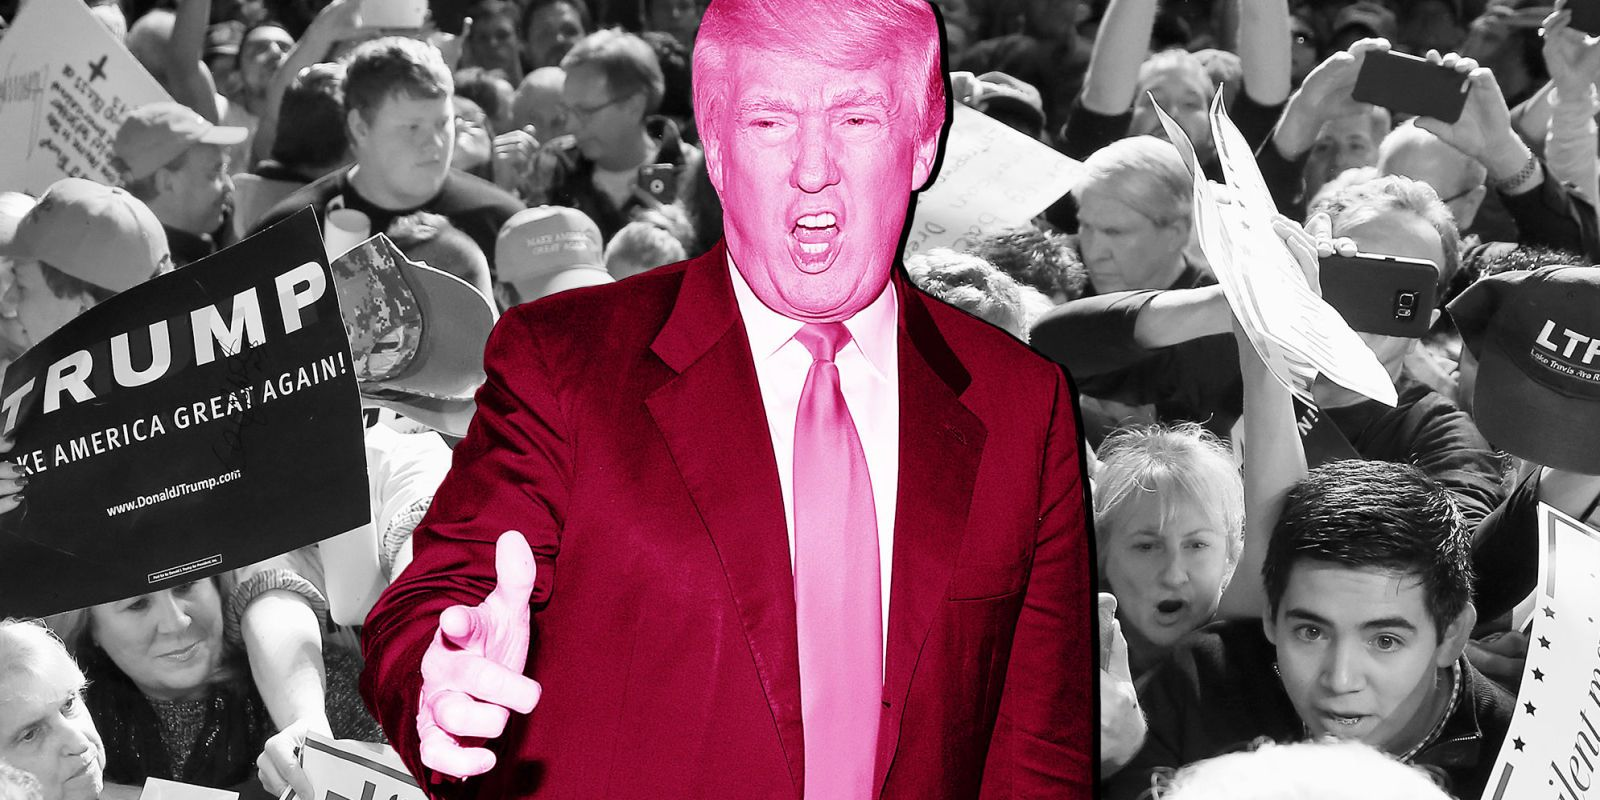 4 Reasons Trump Supporters Remain Blind to His Flaws